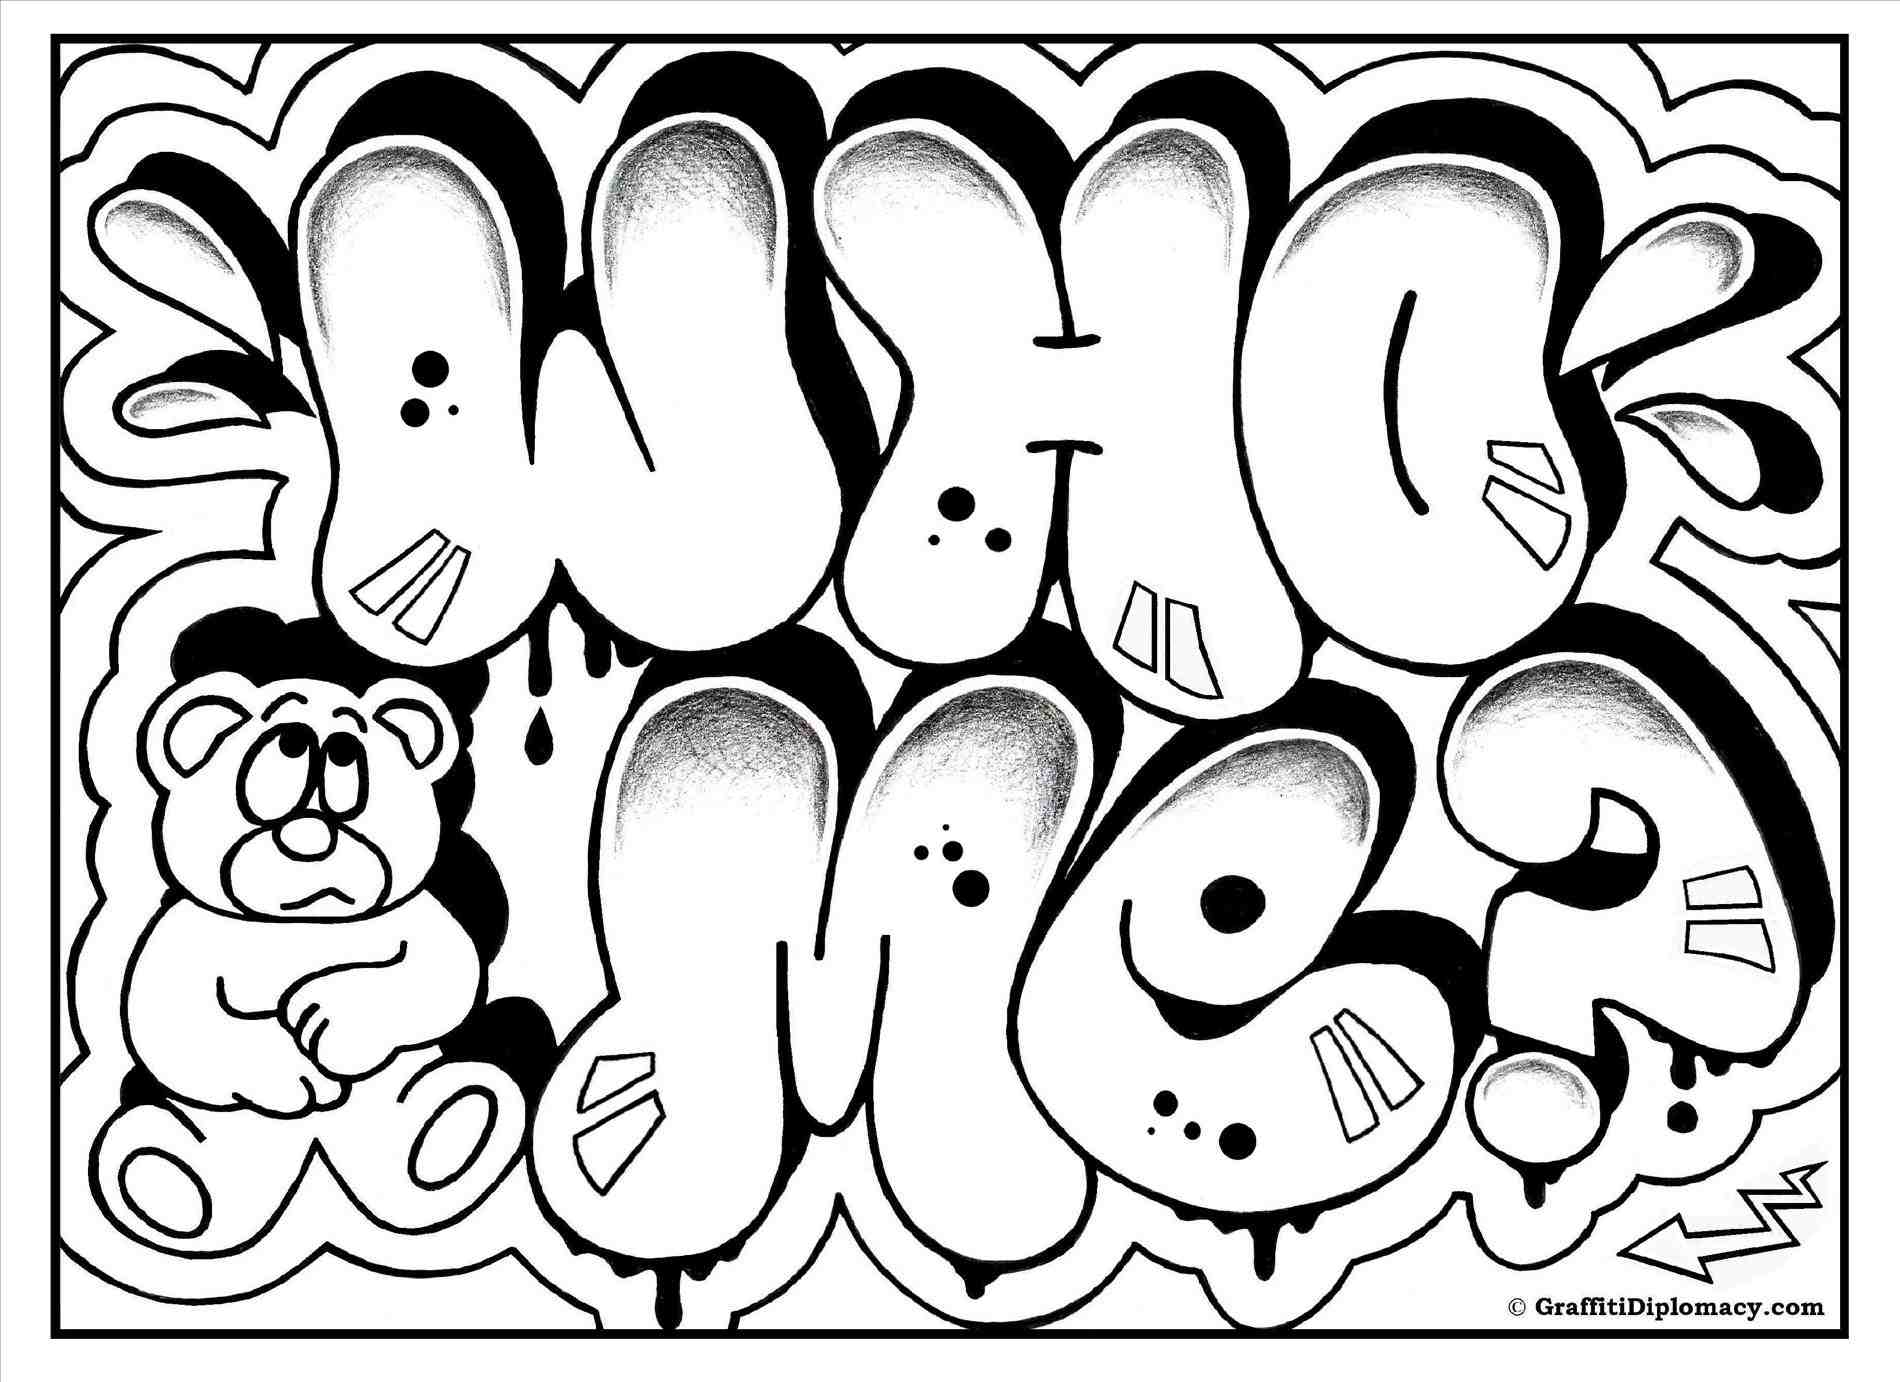 1900x1382 how to draw graffiti letters a z easy